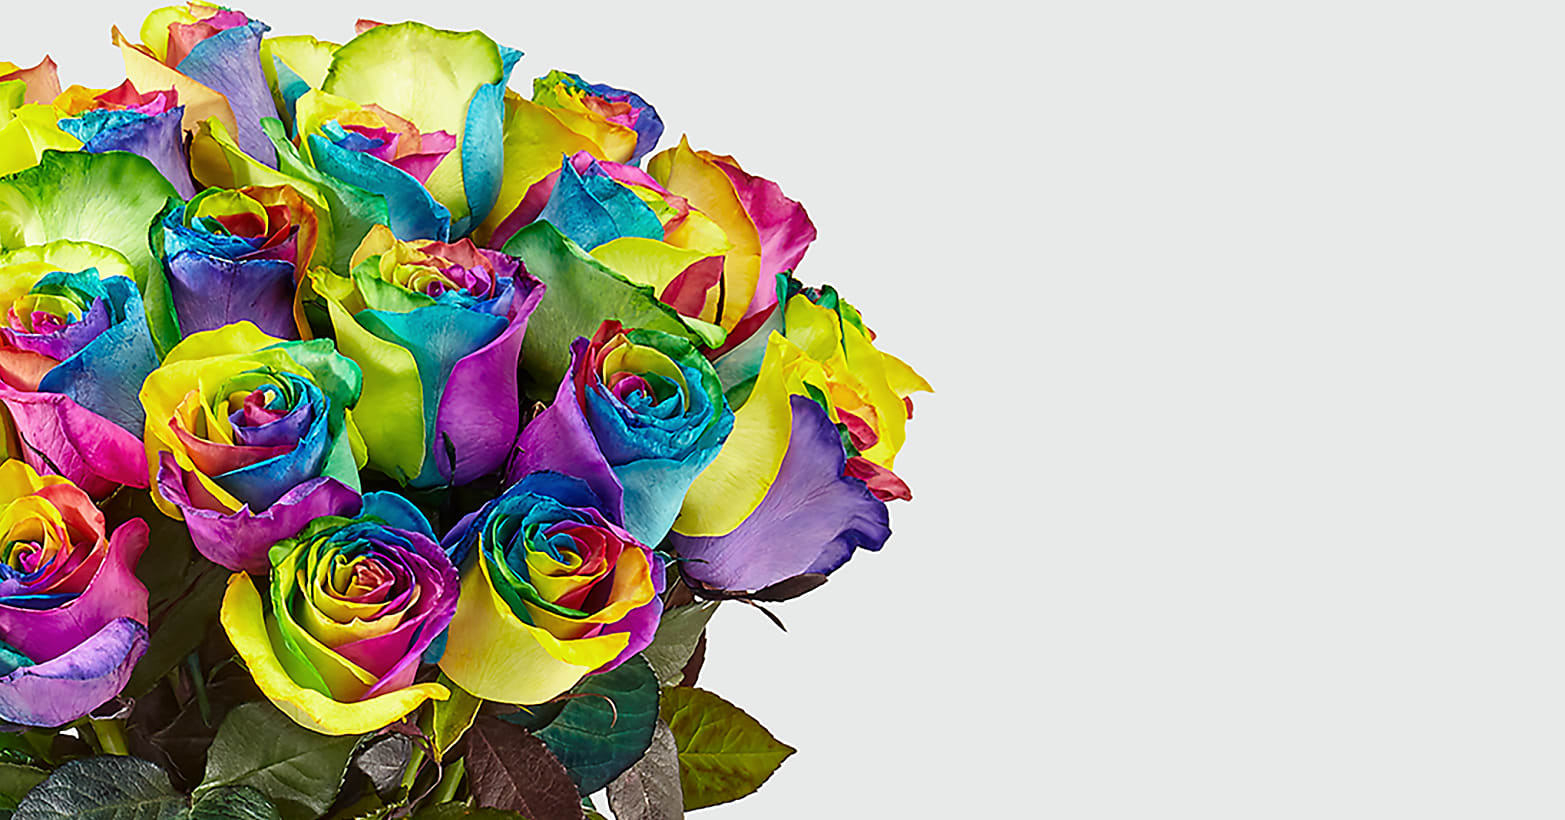 Unicorn Roses–24 Long Stemmed Tie Dyed Roses - Image 2 Of 3